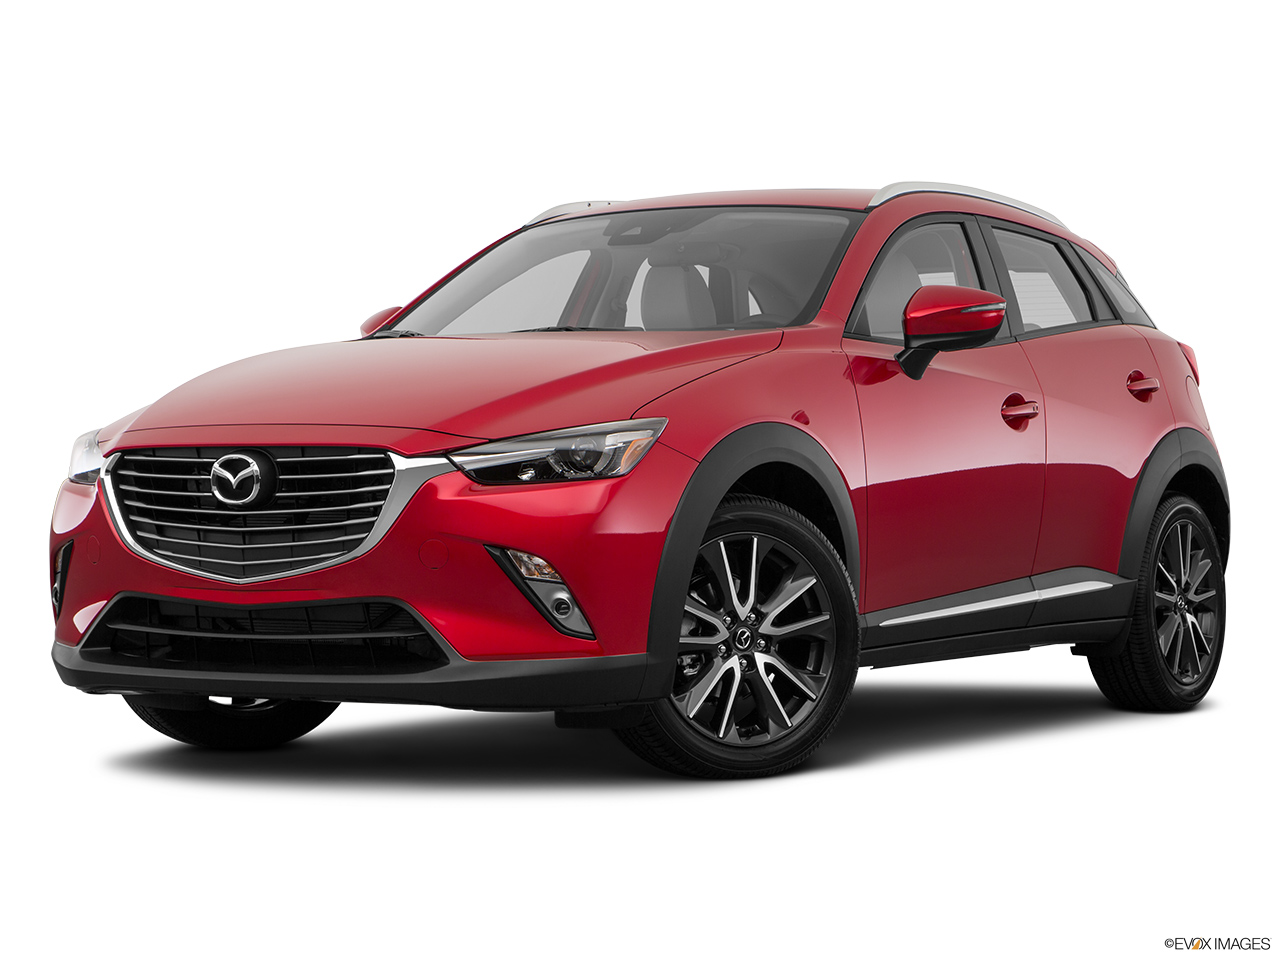 Car Lease Vancouver >> Lease a 2018 Mazda CX-3 GX Automatic AWD in Canada ...